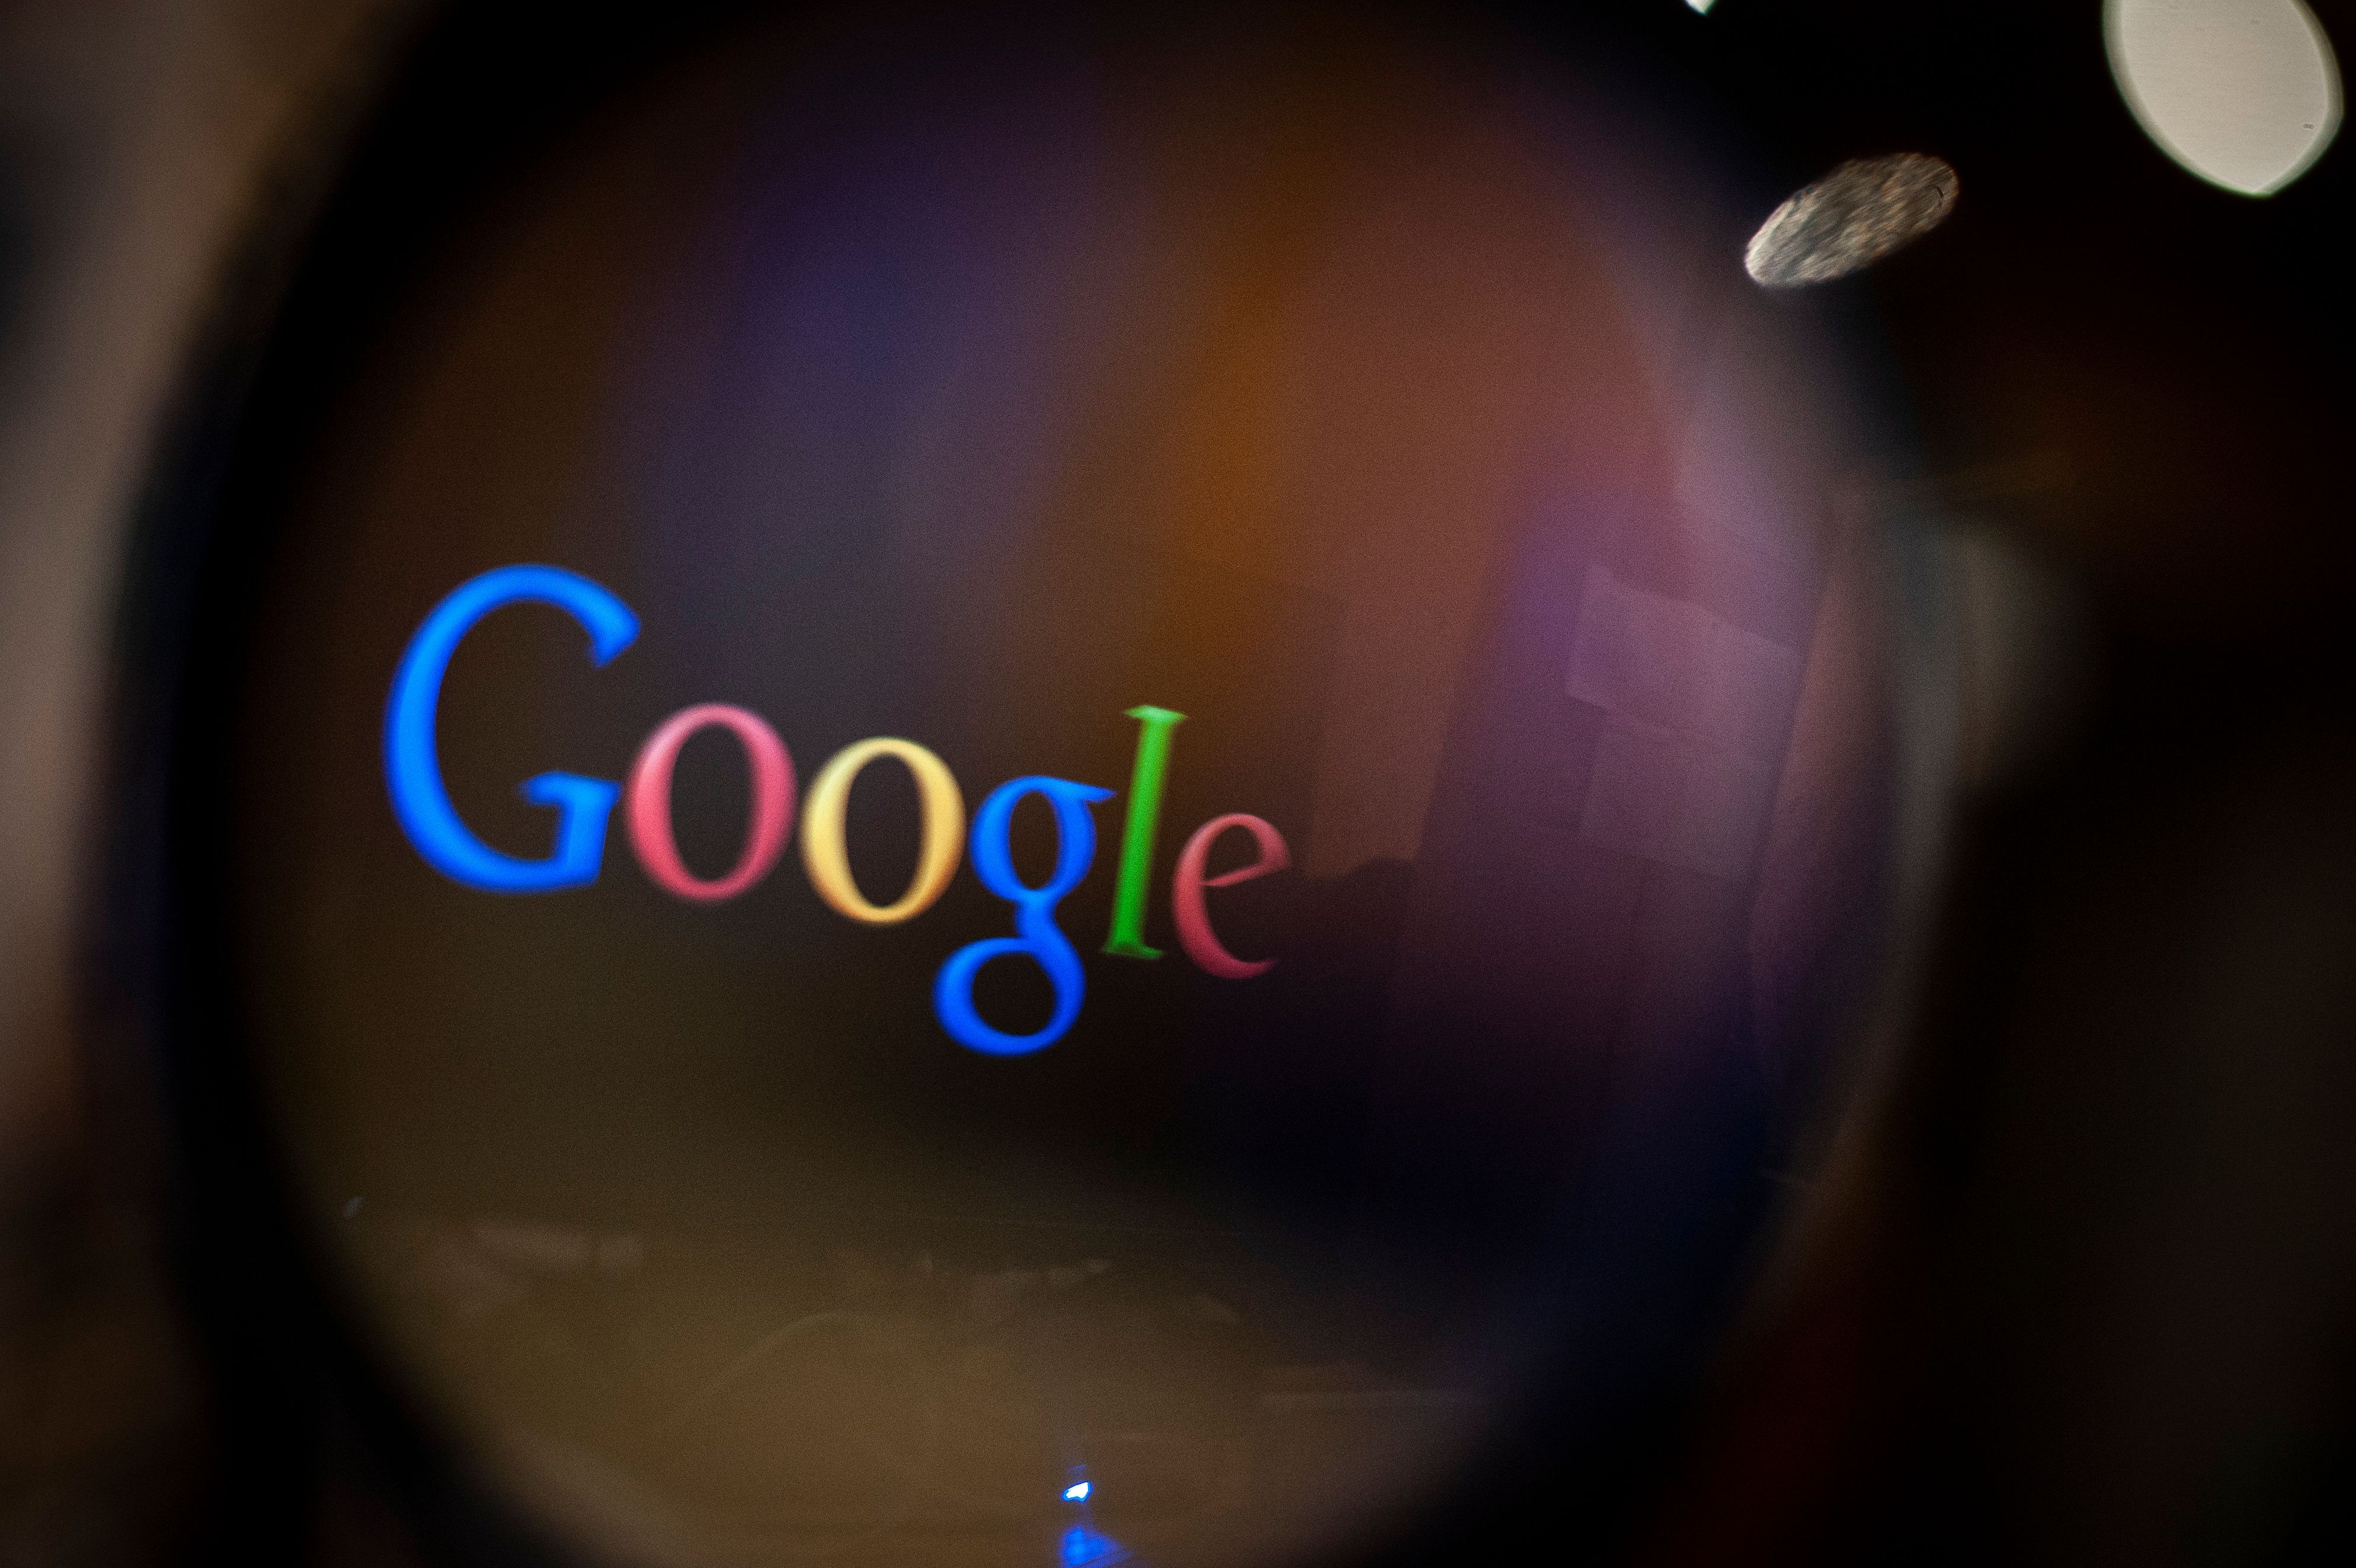 Google+ shutting down following security bug